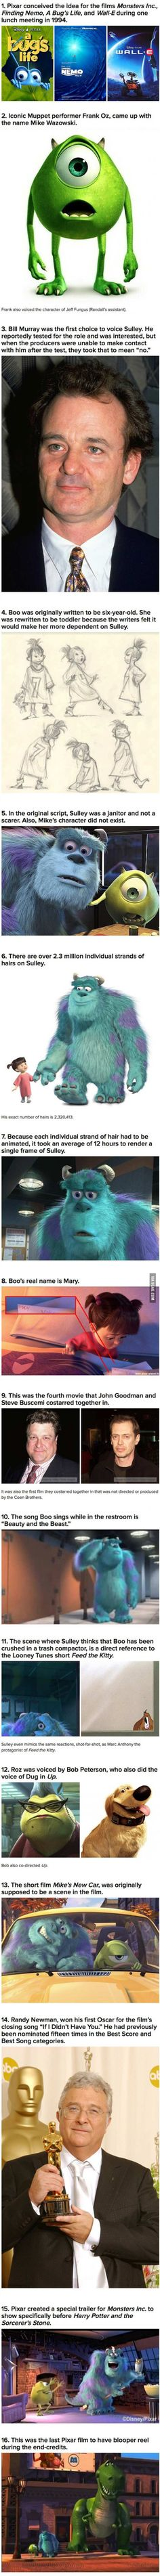 16 Things You Might Not Know About Monsters Inc.